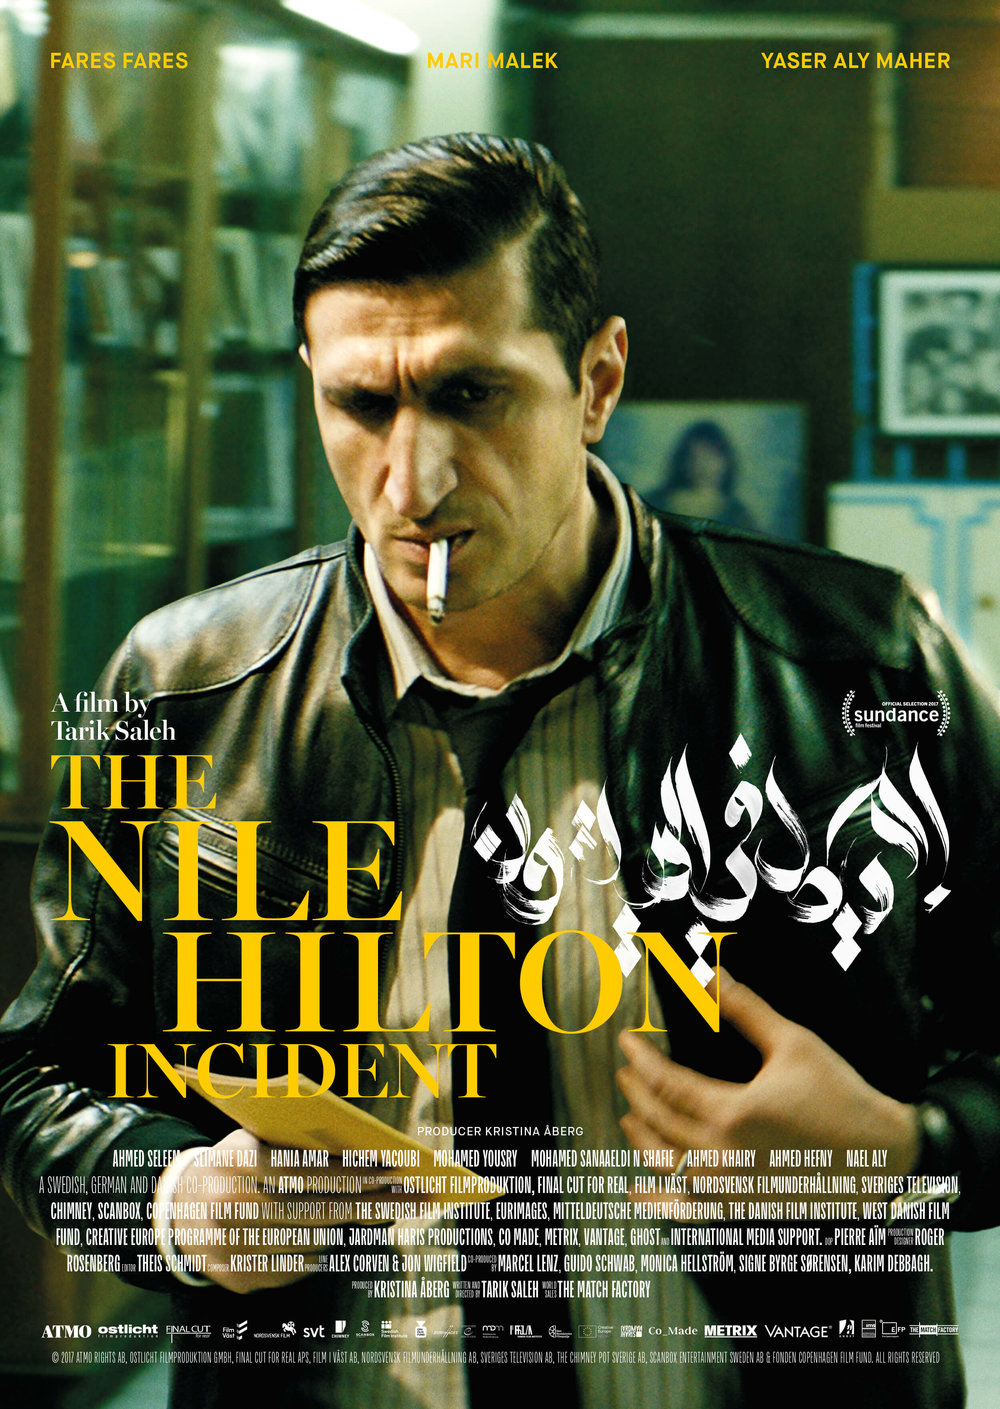 18- The Nile Hilton Incident